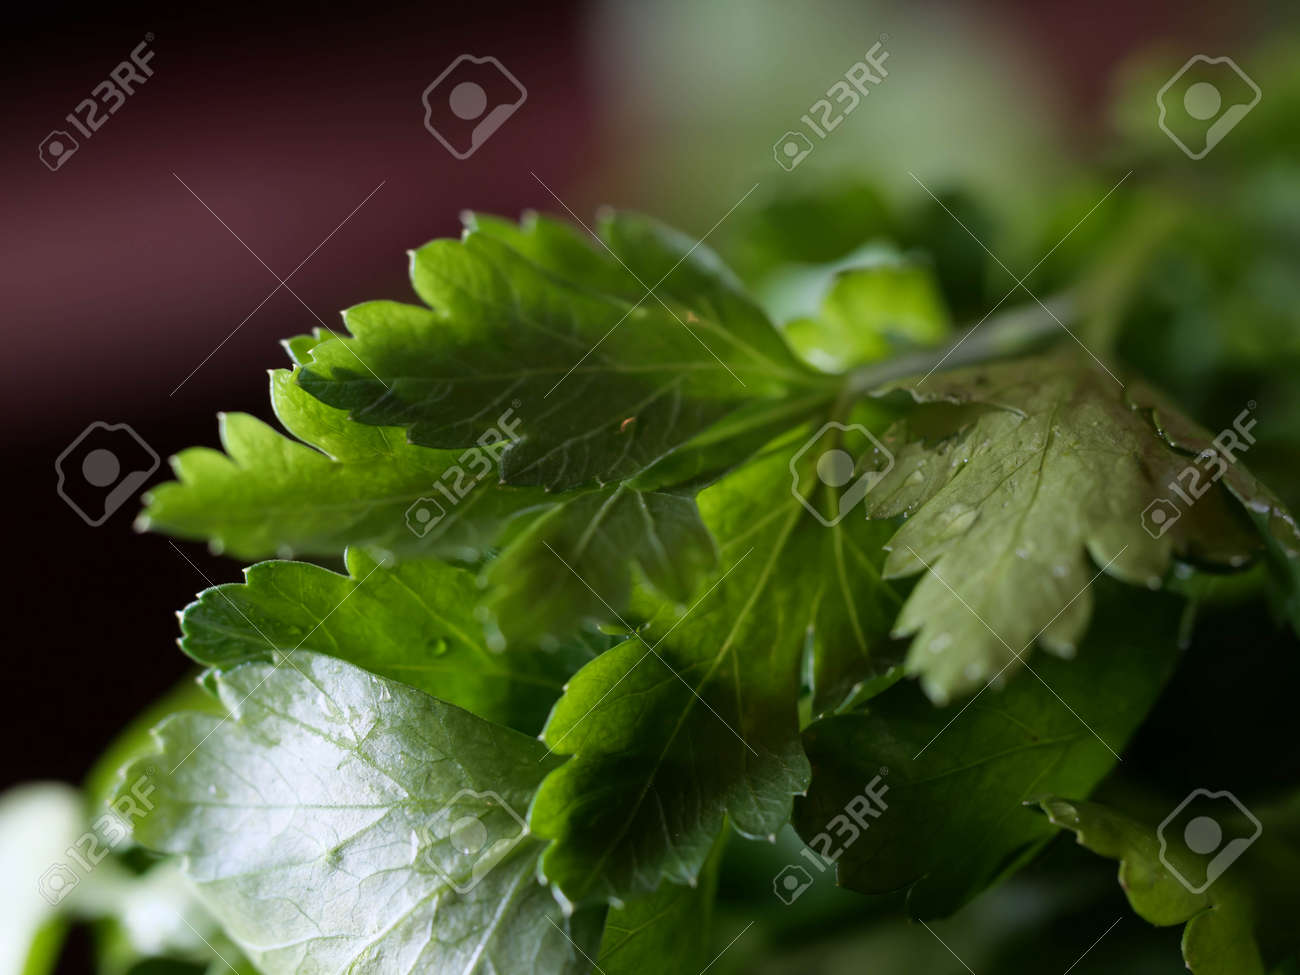 Parsley healthy foods from the garden, vitamin salads, fresh herbs - 166924820